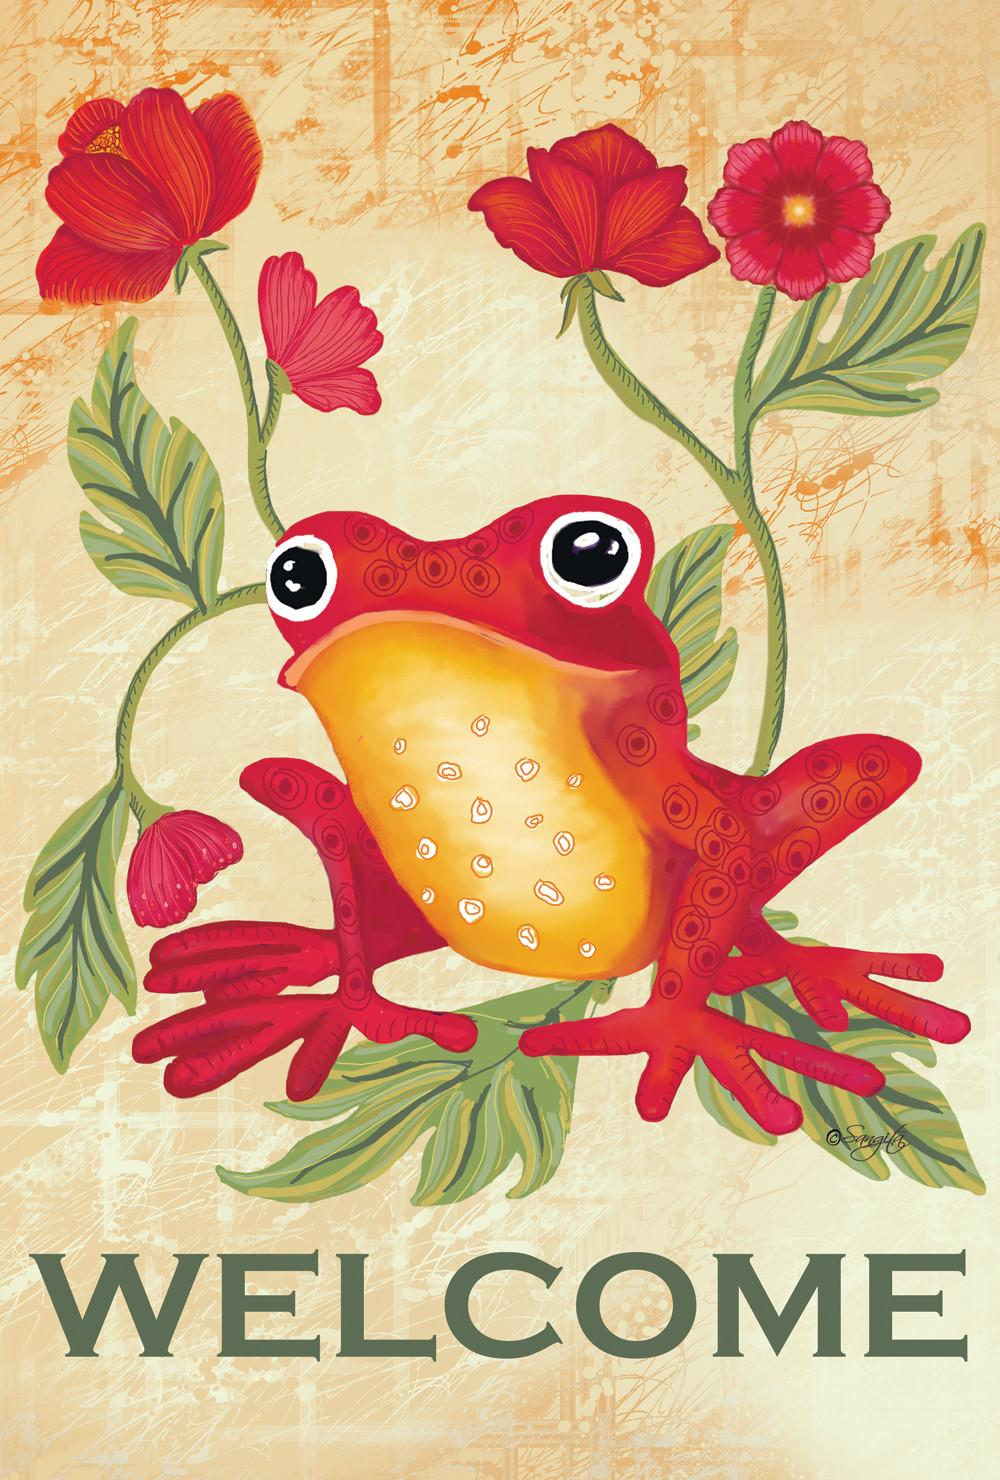 Welcome Frog Flag Mad Gardening